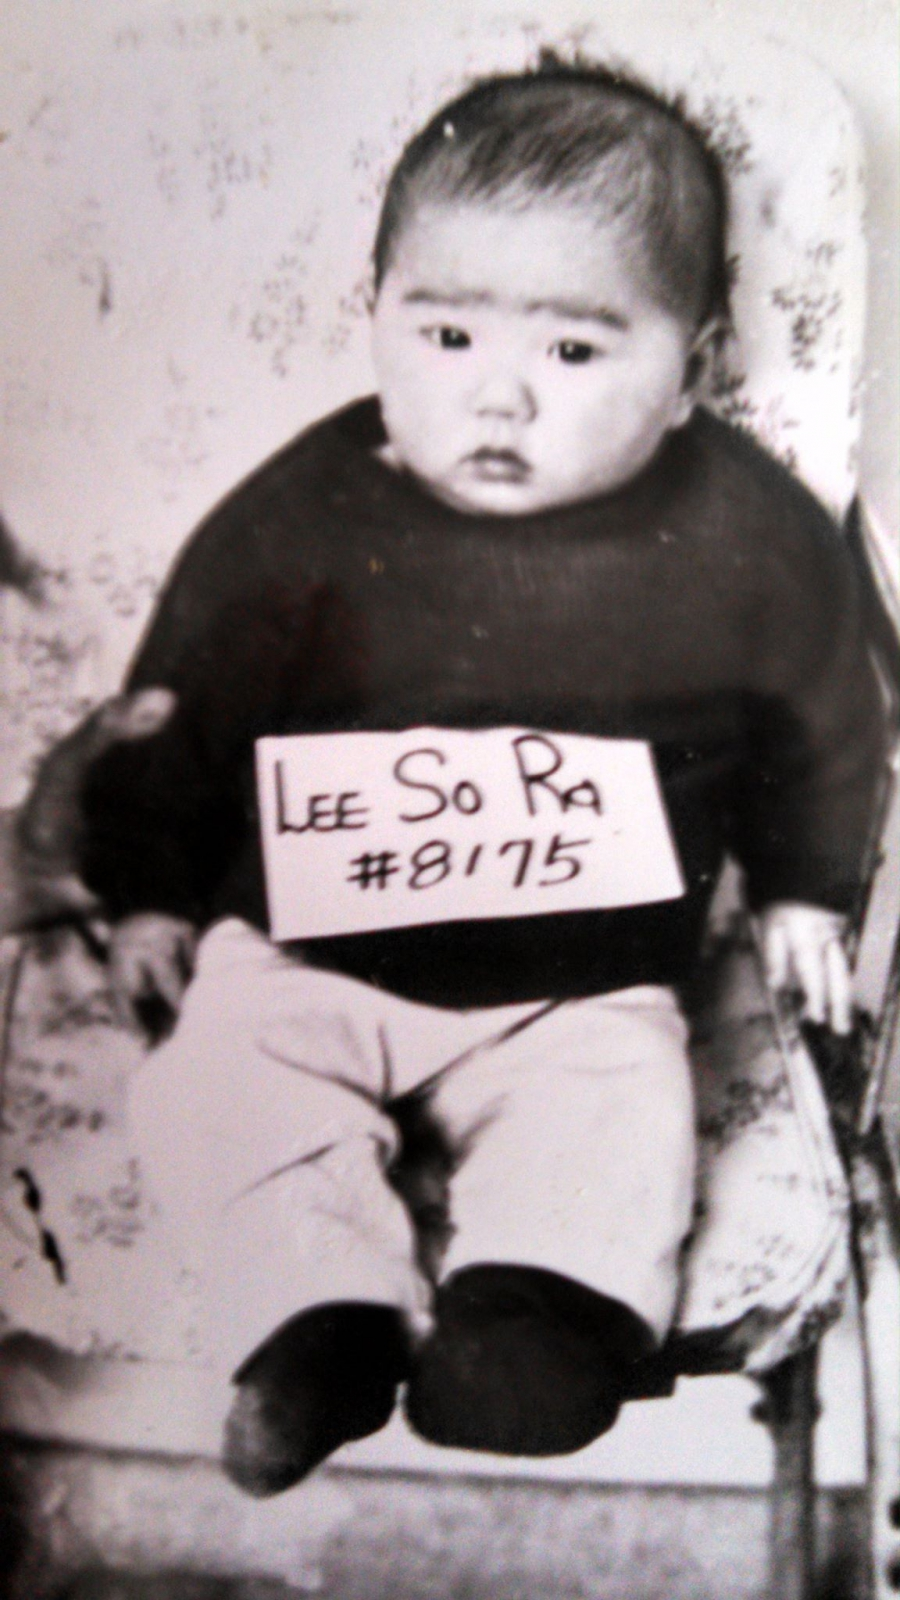 My adoption photo in Korea, with my adoption number #8175.